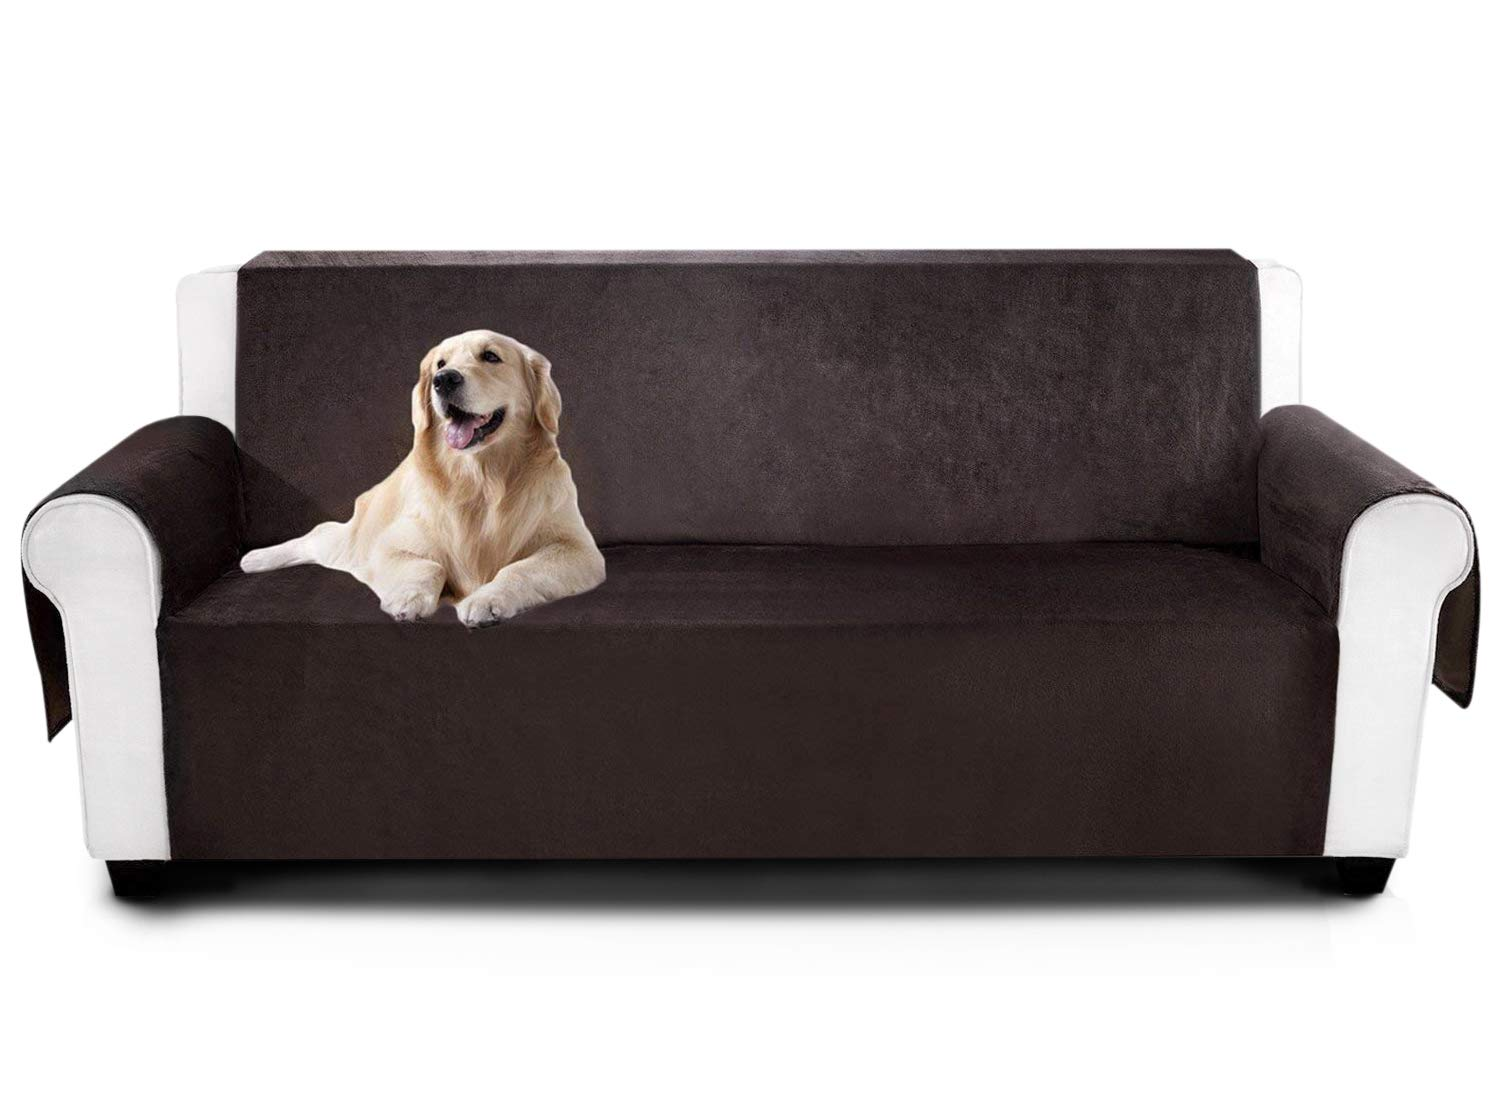 YEMYHOM Real Non-Slip Pet Dog Sofa Covers Protectors Water-Repellent Recliner Couch Slipcovers with Pockets (Loveseat, Coffee)